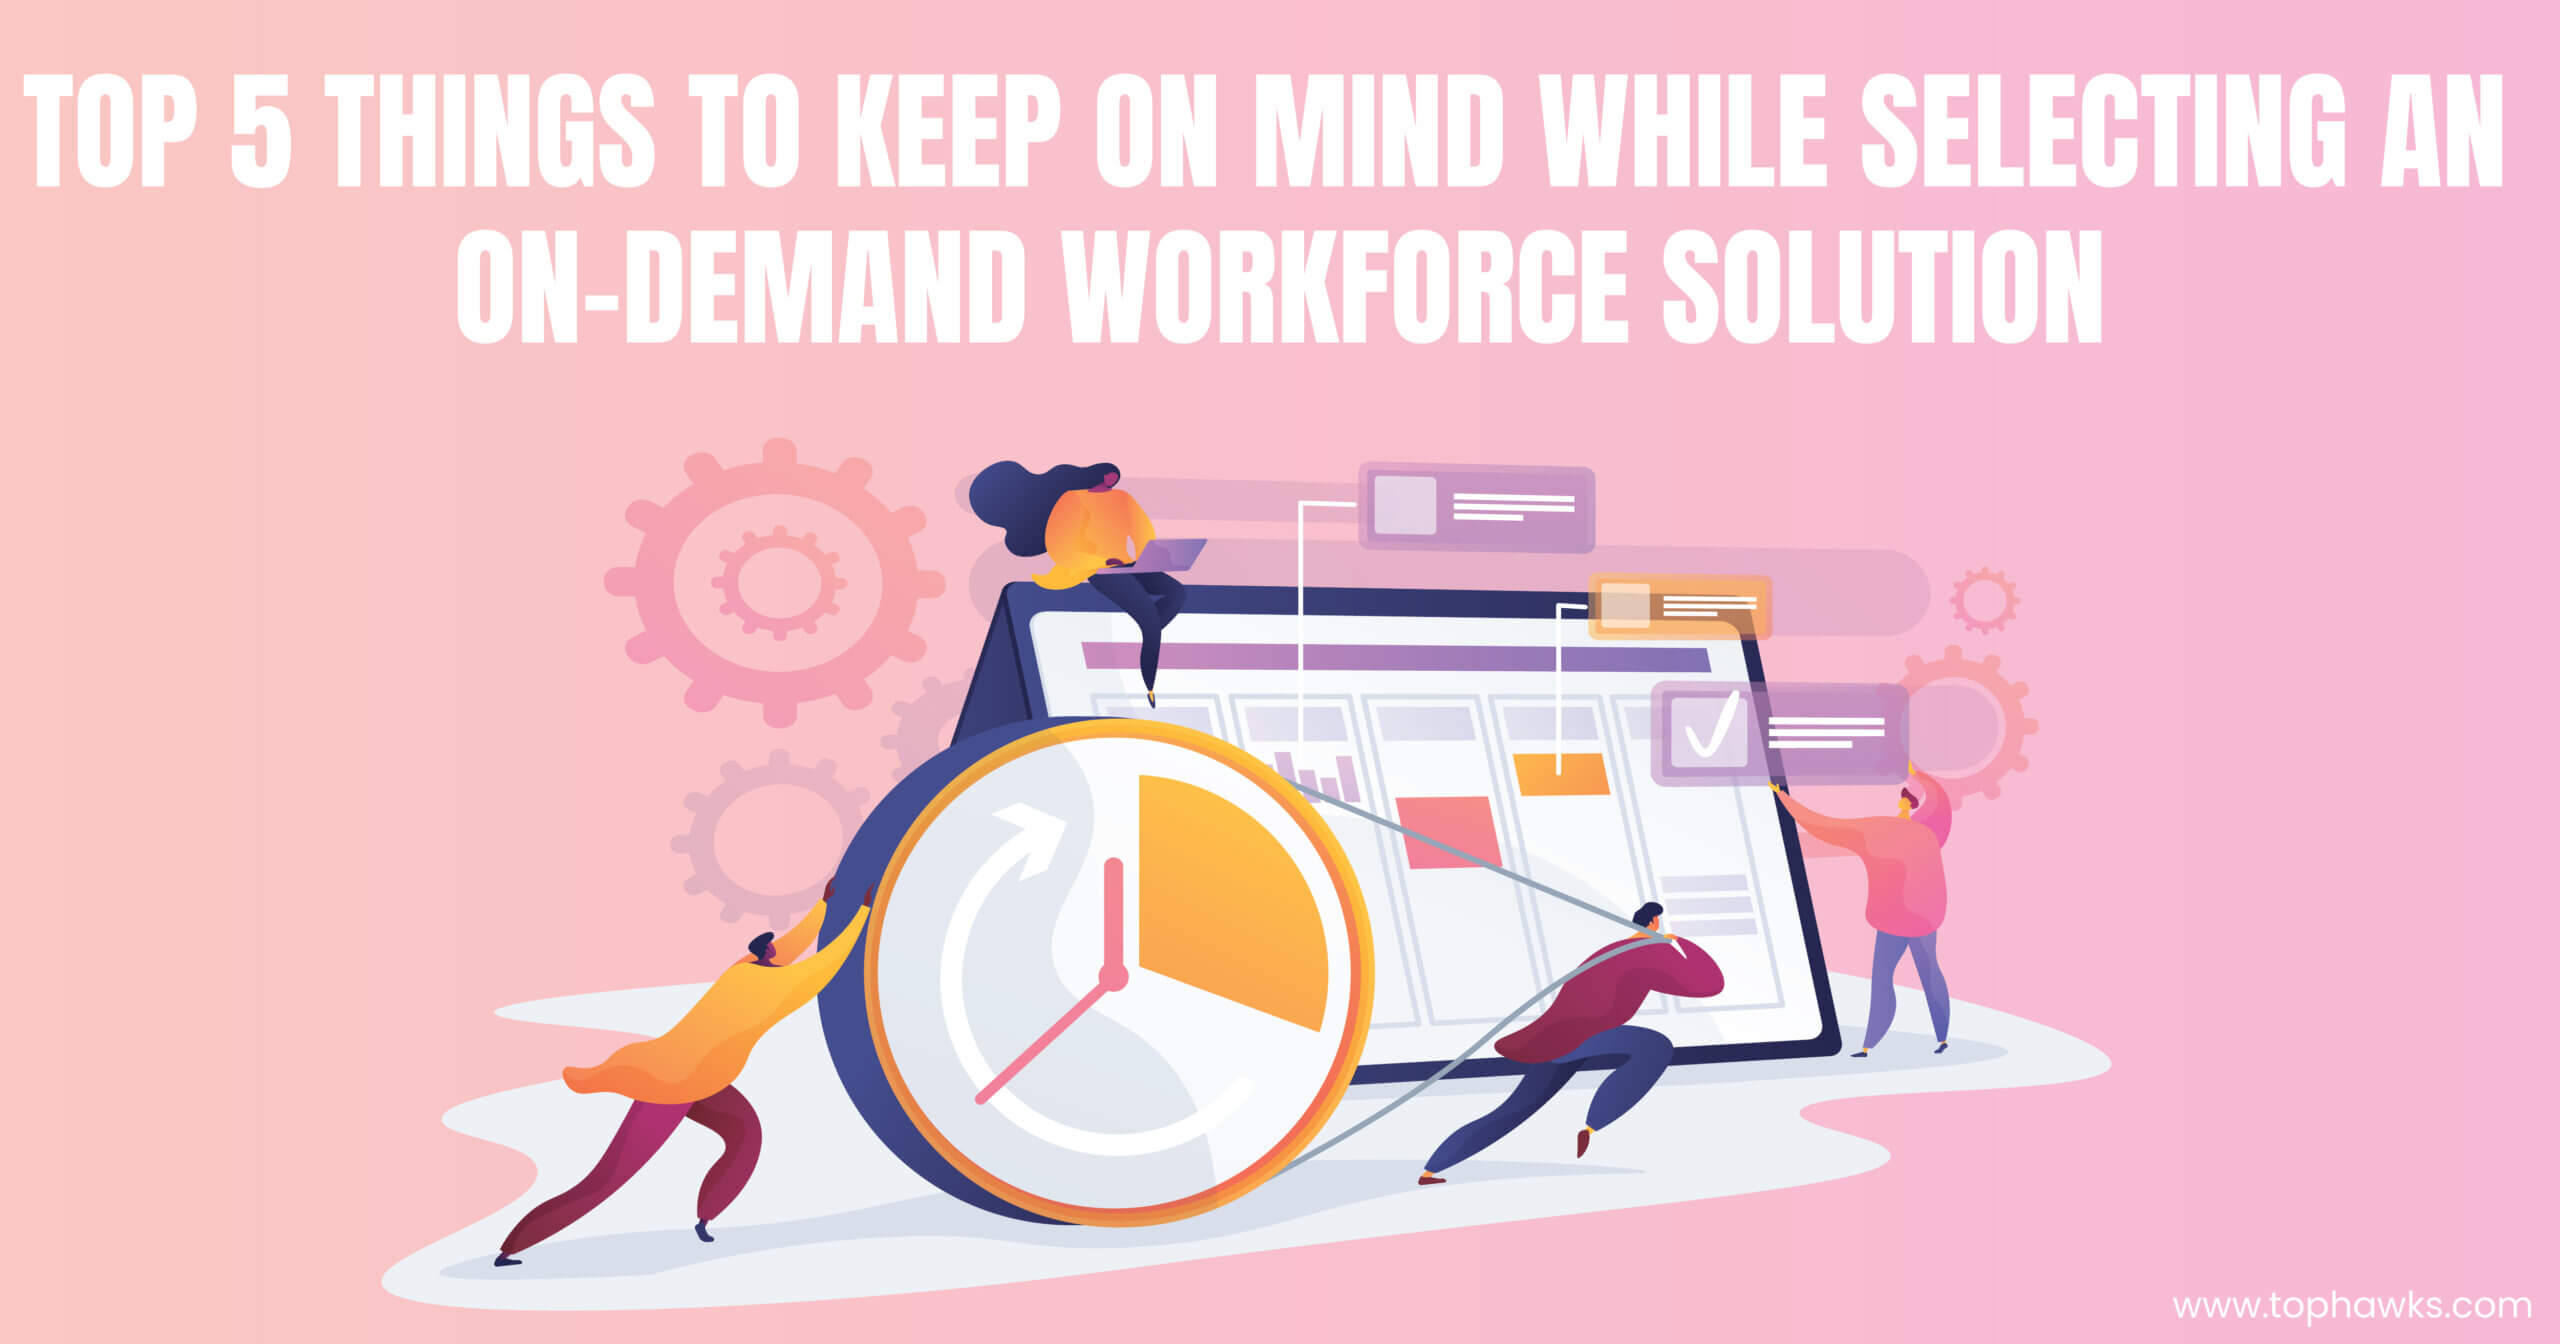 Top 5 things to keep in mind while selecting an on-demand workforce solution